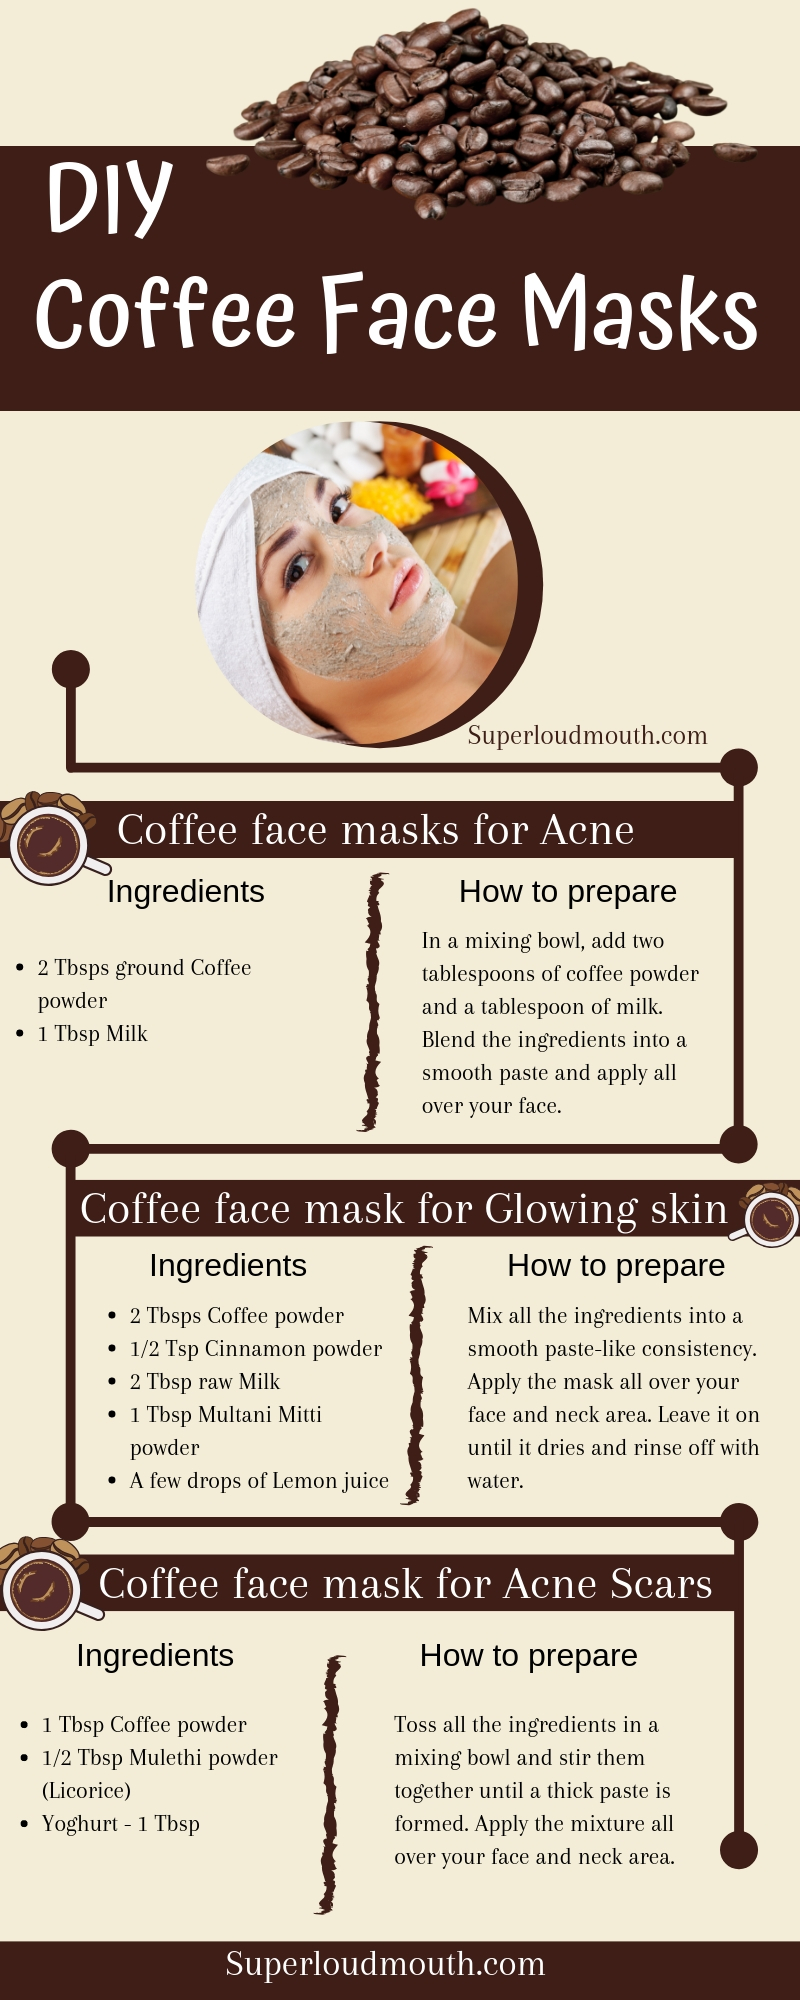 Photo of Coffee face mask recipes for Acne, Glowing skin and other skin issues